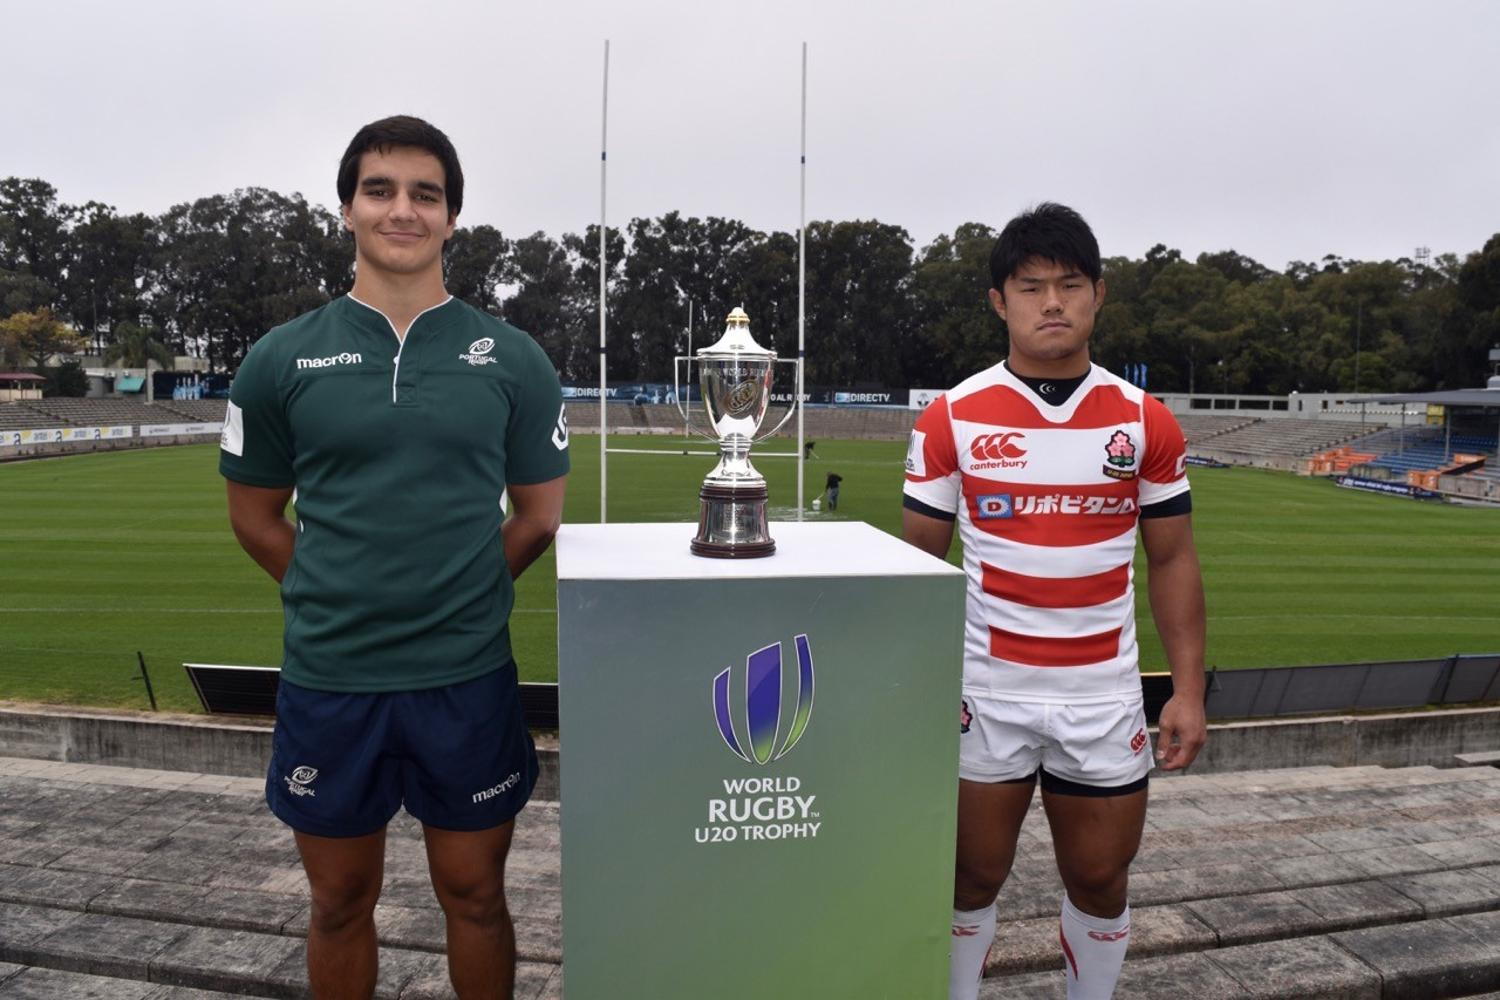 World Rugby U20 Trophy 2017 final - captain's photocall